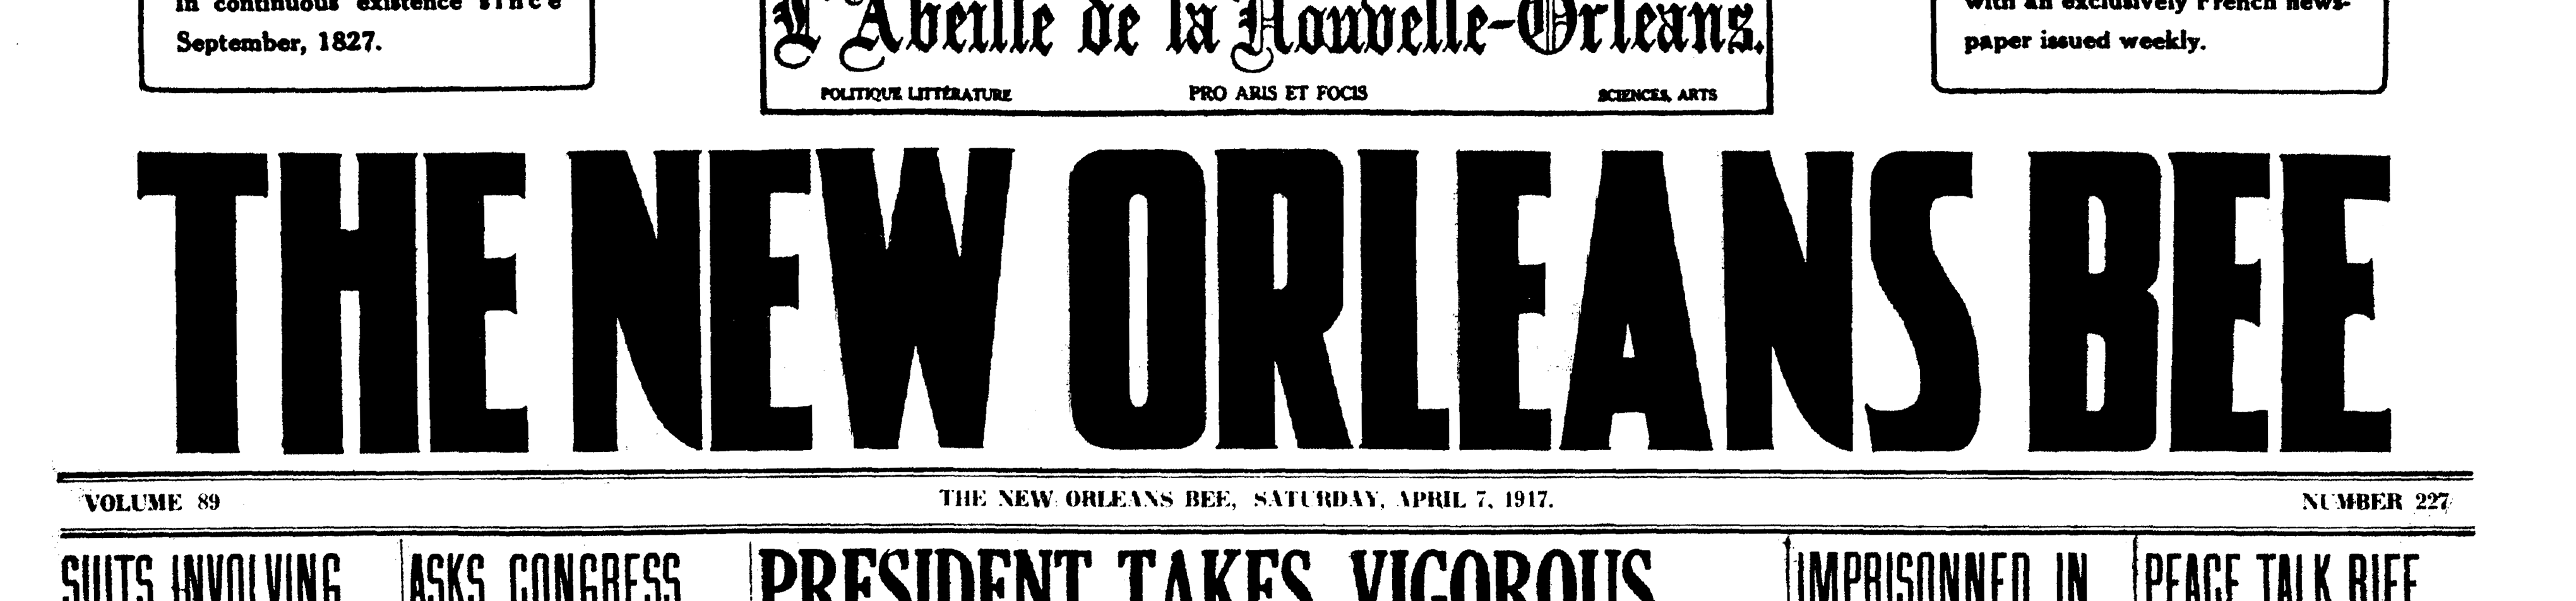 New_Orleans_Bee_1917_04_07_frontpage.png